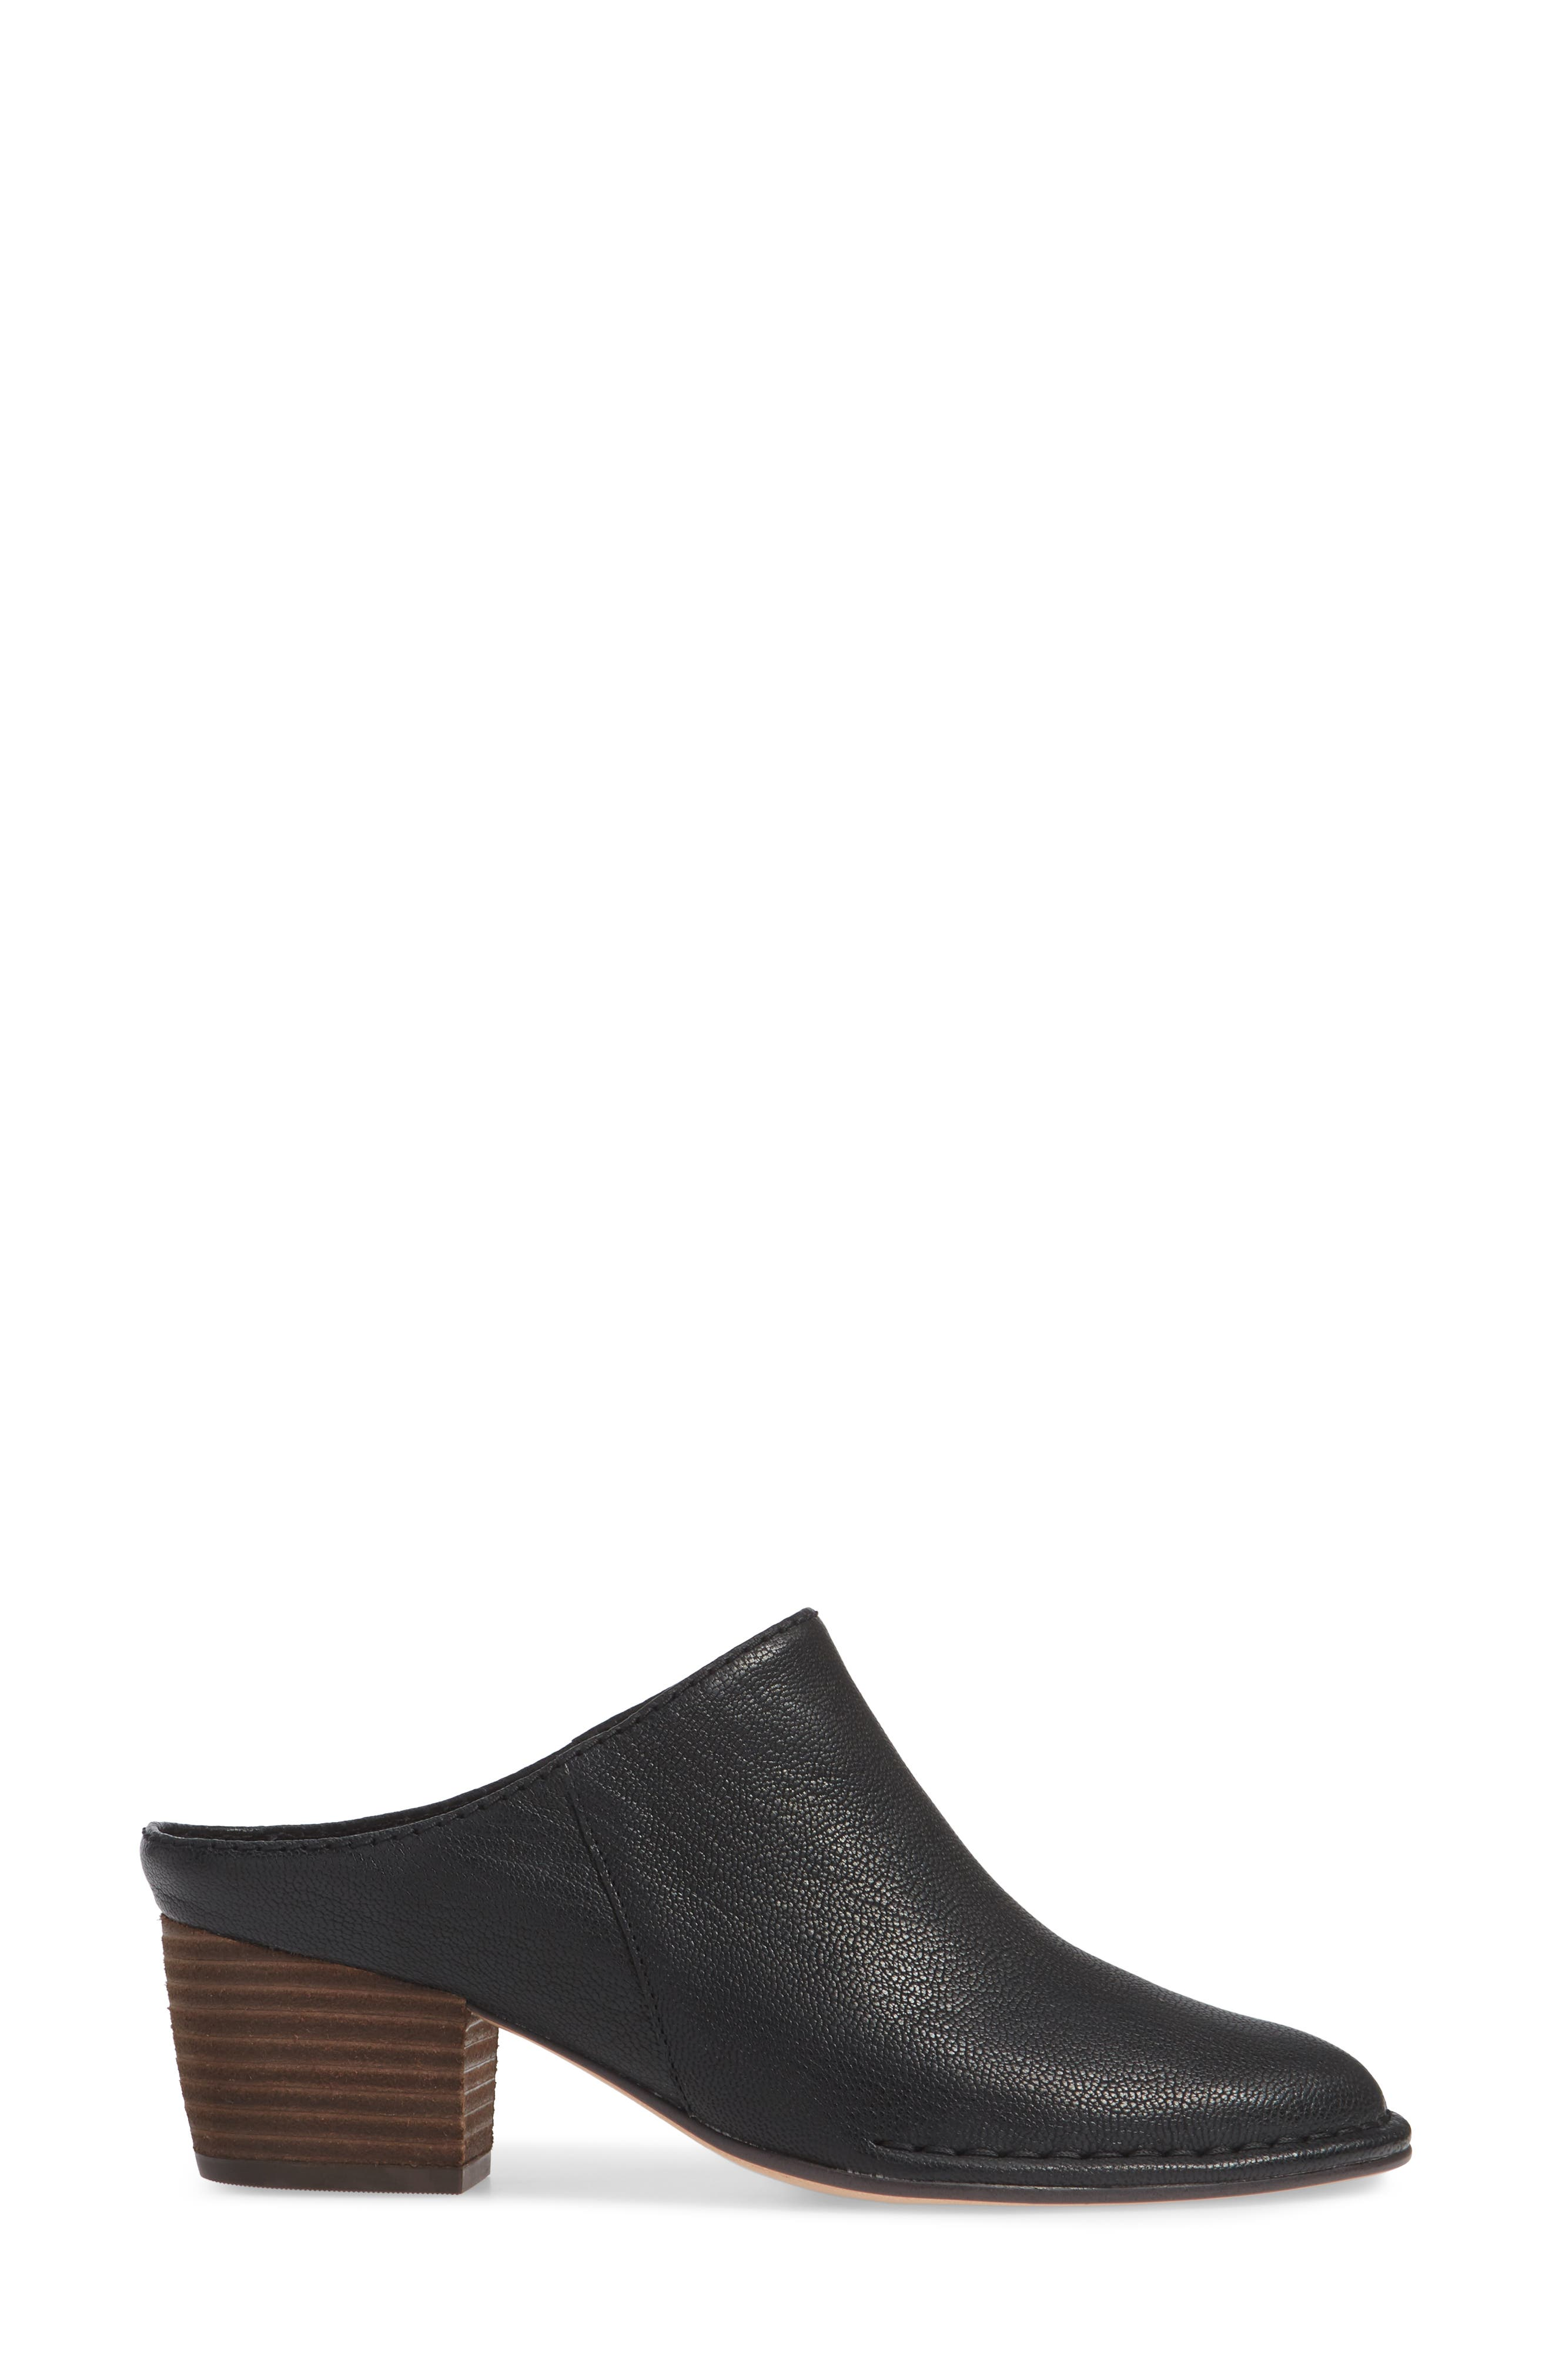 CLARKS<SUP>®</SUP>, Spiced Isla Mule, Alternate thumbnail 3, color, BLACK LEATHER